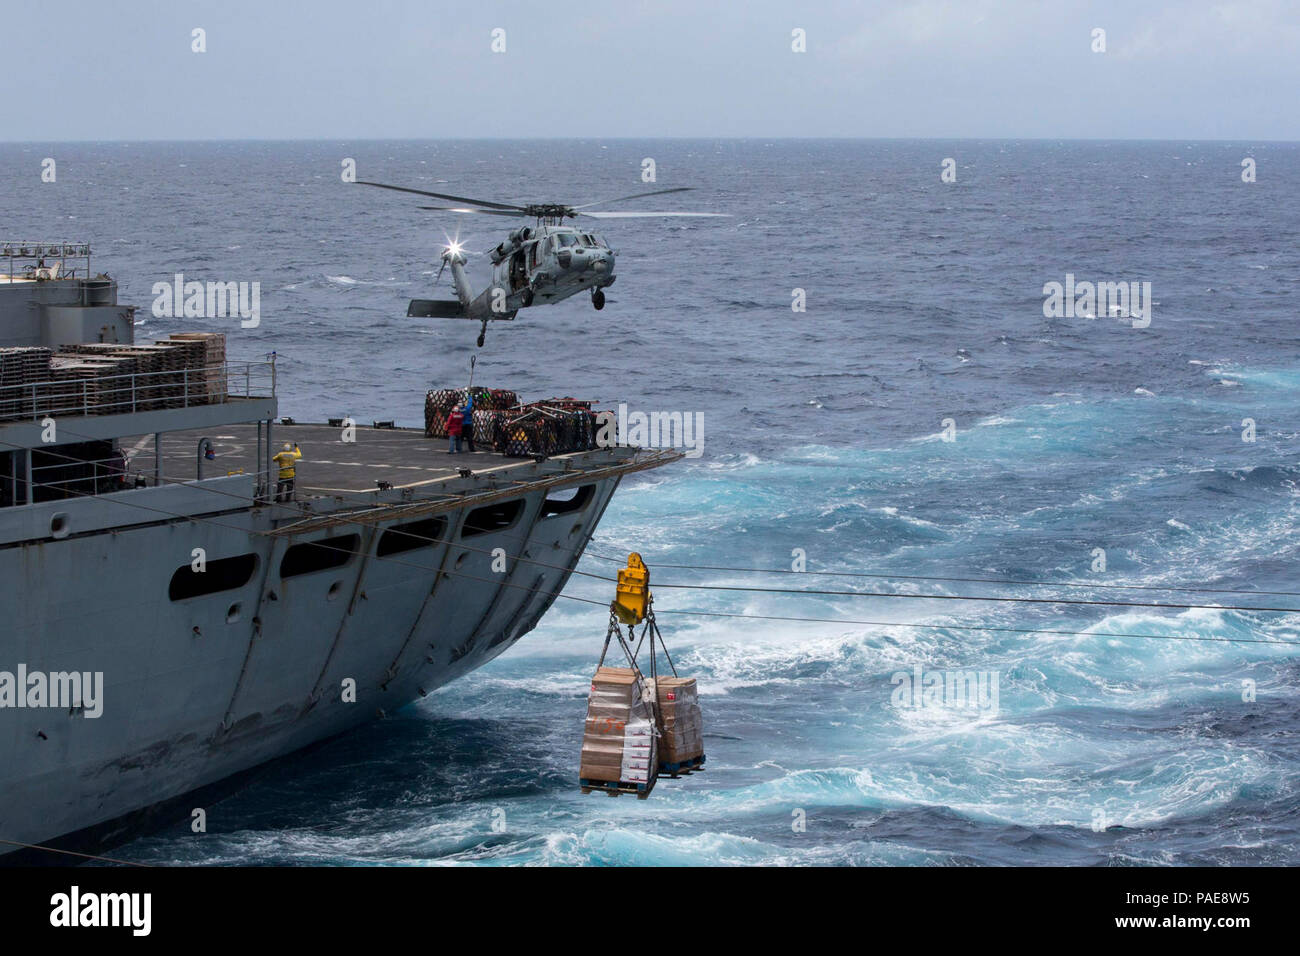 CARIBBEAN SEA (Sept. 28, 2017) Pallets of supplies are transferred from the fast combat support ship USNS Supply (T-AOE 6) to the amphibious assault ship USS Kearsarge (LHD 3) during a replenishment-at-sea for continuing operations in Puerto Rico. Kearsarge is assisting with relief efforts in the aftermath of Hurricane Maria. The Department of Defense is supporting the Federal Emergency Management Agency, the lead federal agency, in helping those affected by Hurricane Maria to minimize suffering and is one component of the overall whole-of-government response effort. - Stock Image